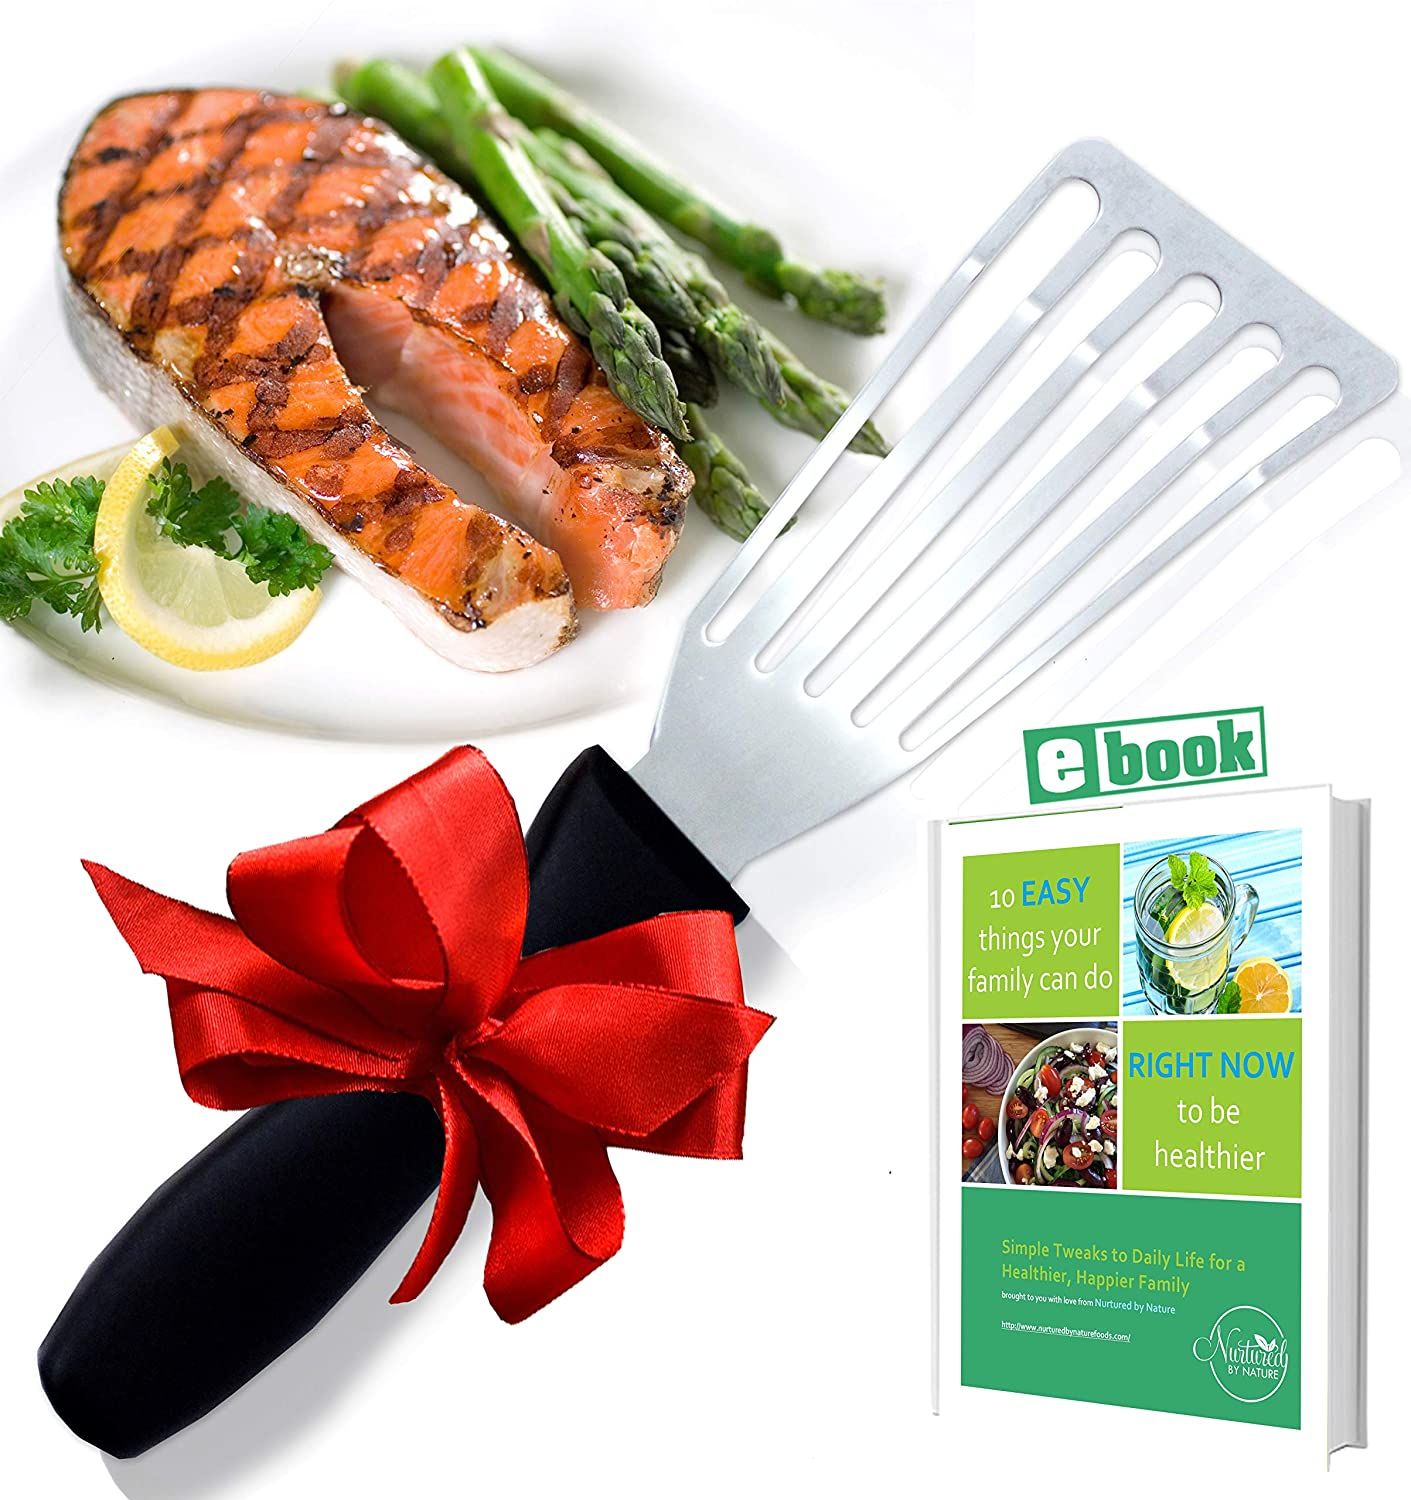 Stainless Steel Fish Spatula, Professional Slotted and Angled Turner, Kitchen Tool, Brilliant Seafood and Baking Cooking Utensil, with 6.5 Inch Blade, Comfortable Ergonomic Handle Lifestyle Dynamics COMINHKPR147766